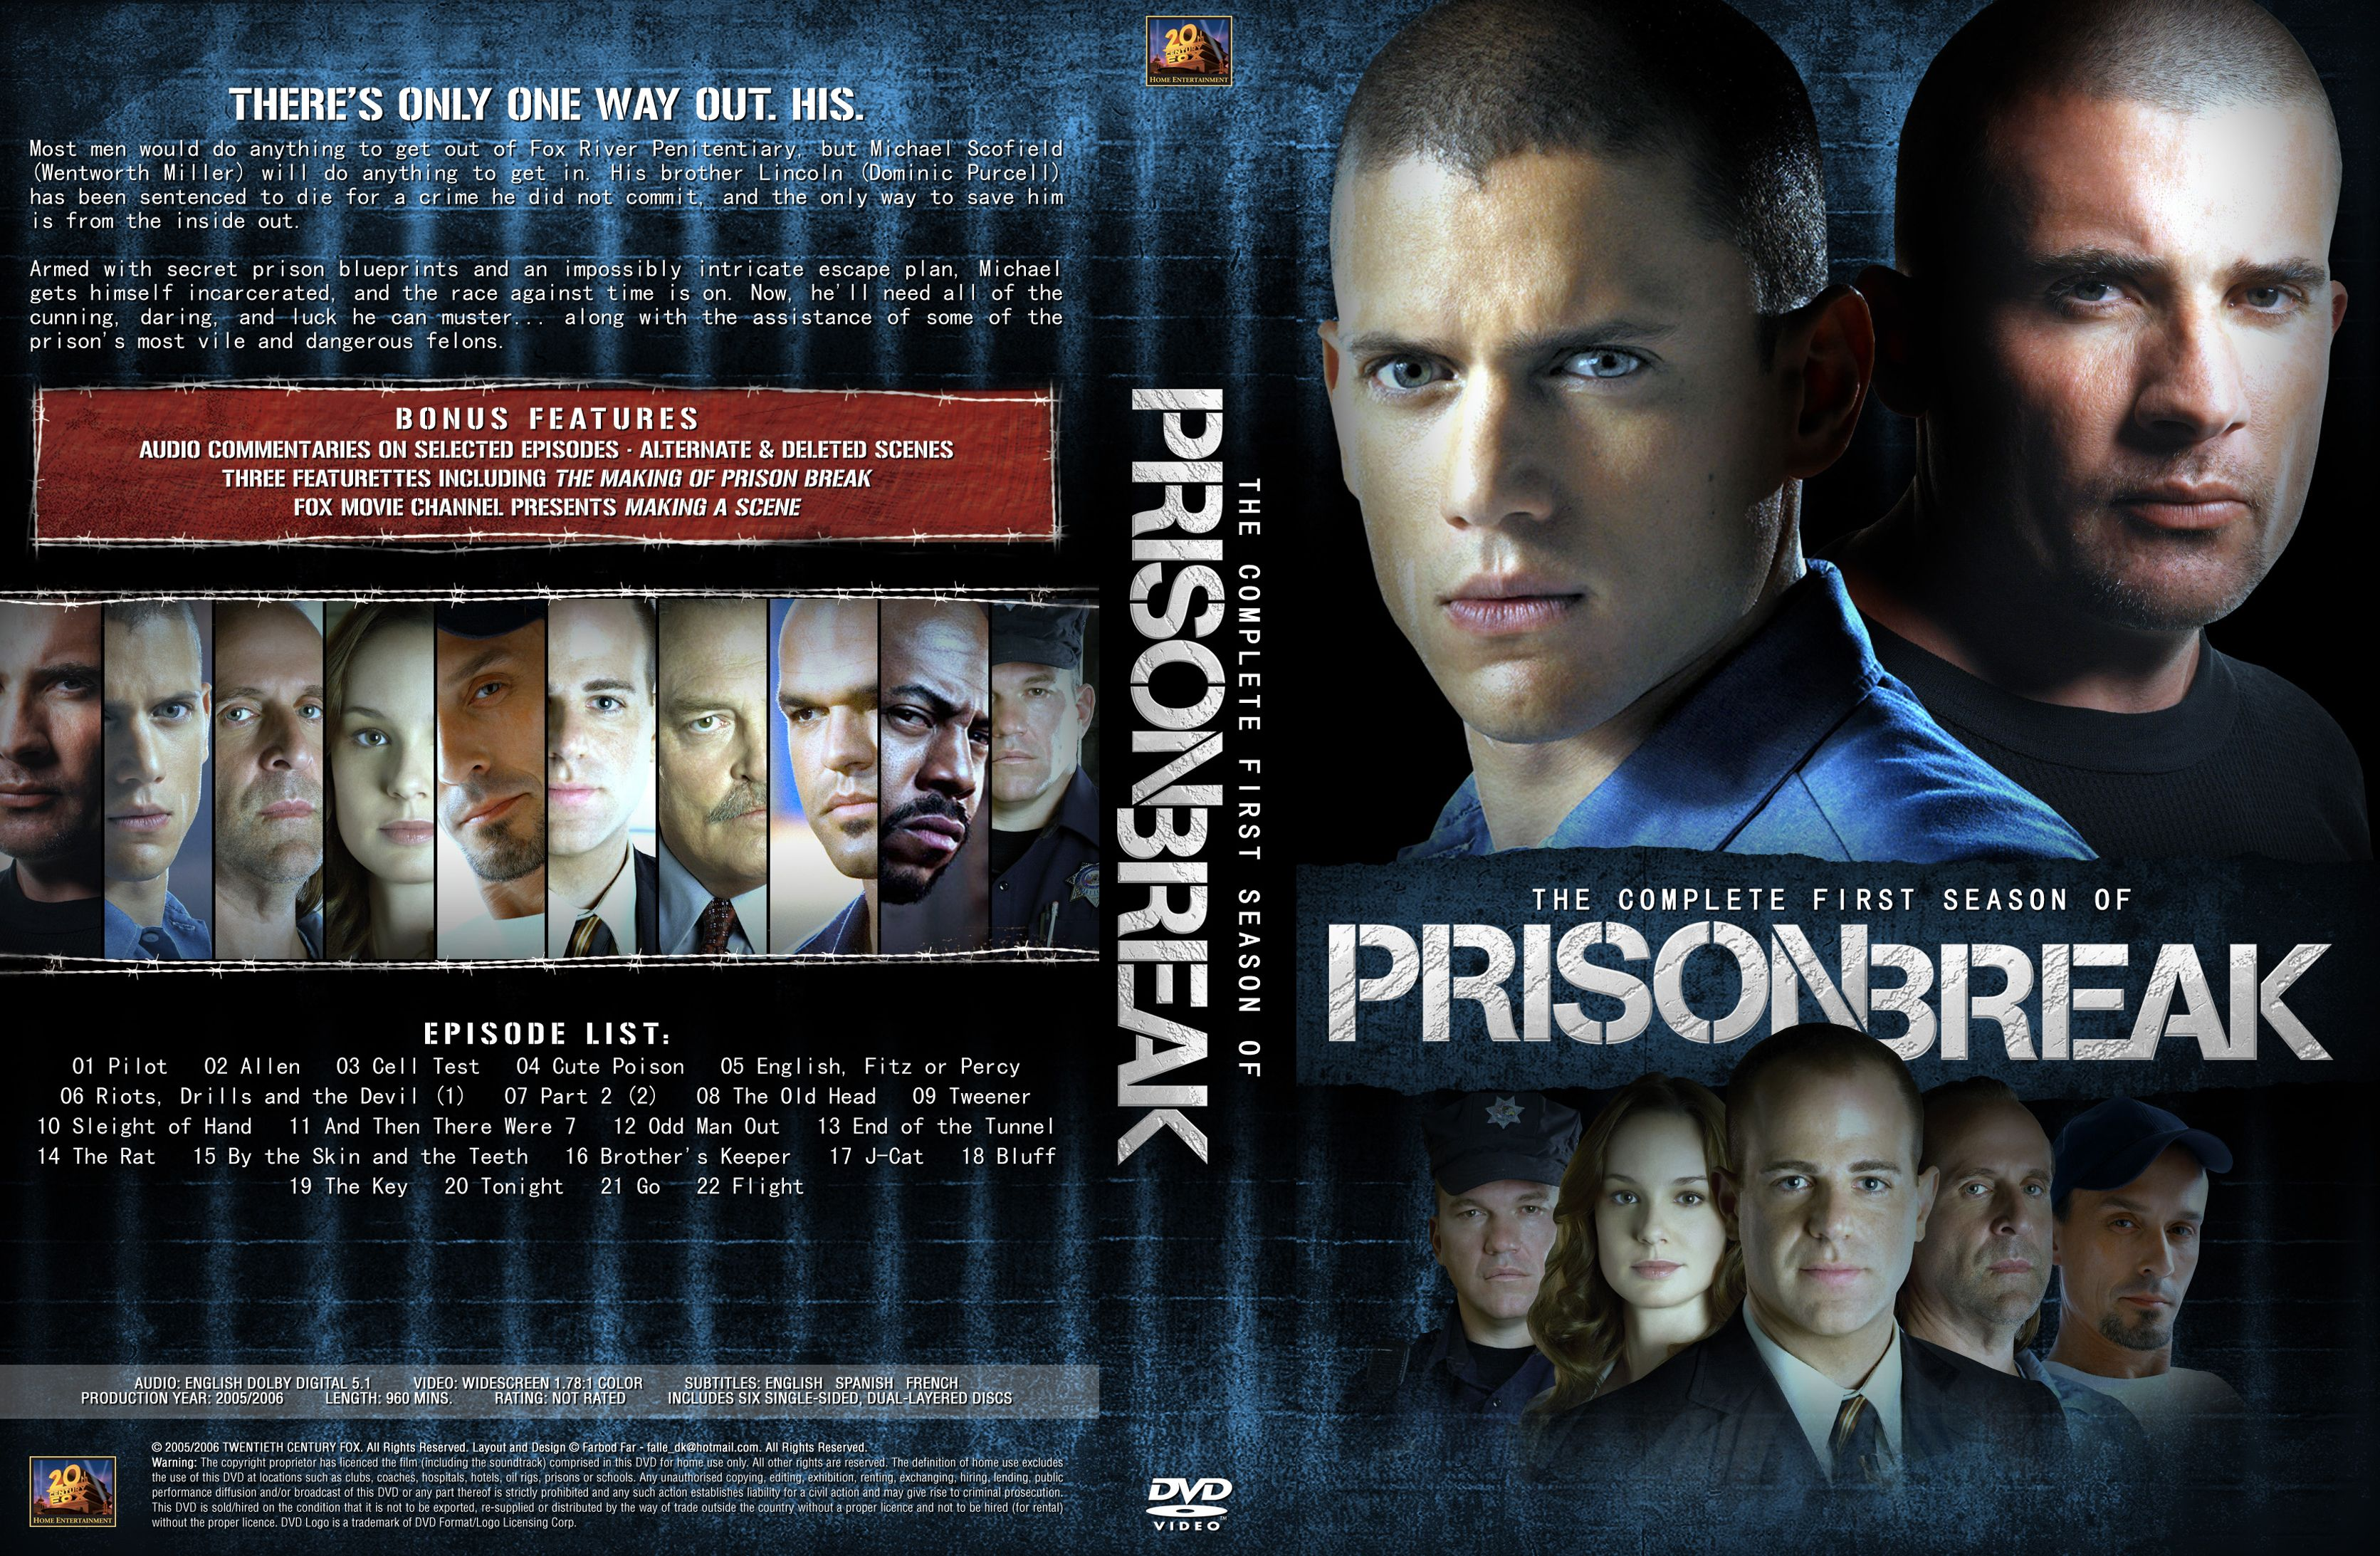 Prison Break Season 01 Dvd Us1 Dvd Covers Cover Century Over 500 000 Album Art Covers For Free